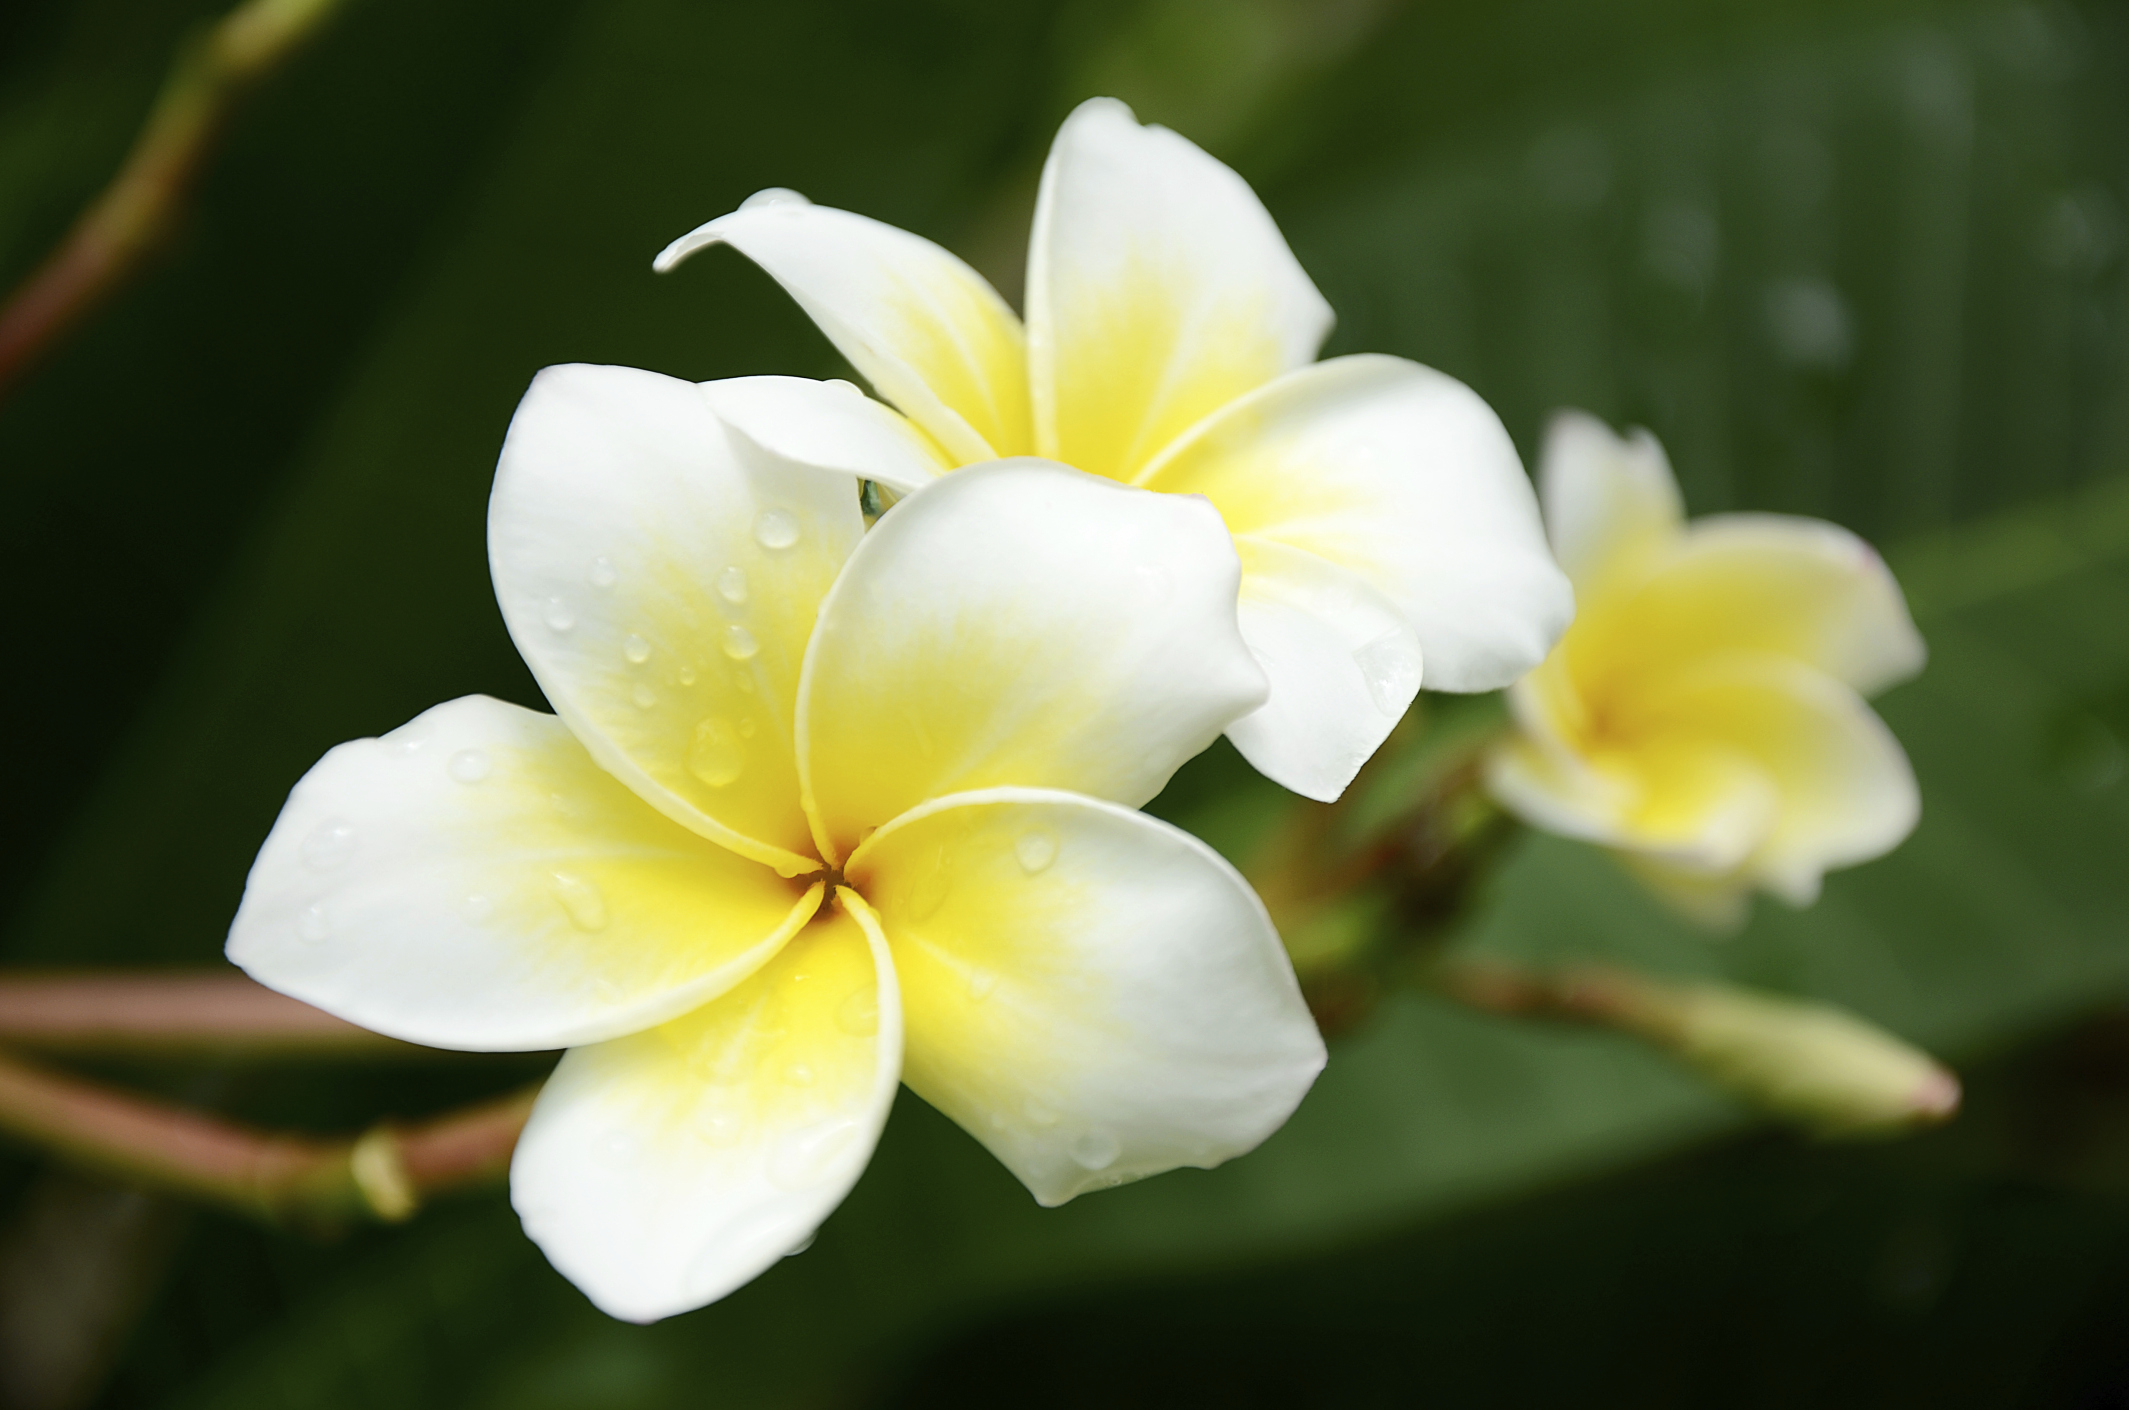 Wedding frangipani articles easy weddings even if you are having rubra frangipani flowers which are less fragranced you could include frangipani notes in your wedding perfume to add to the tropical izmirmasajfo